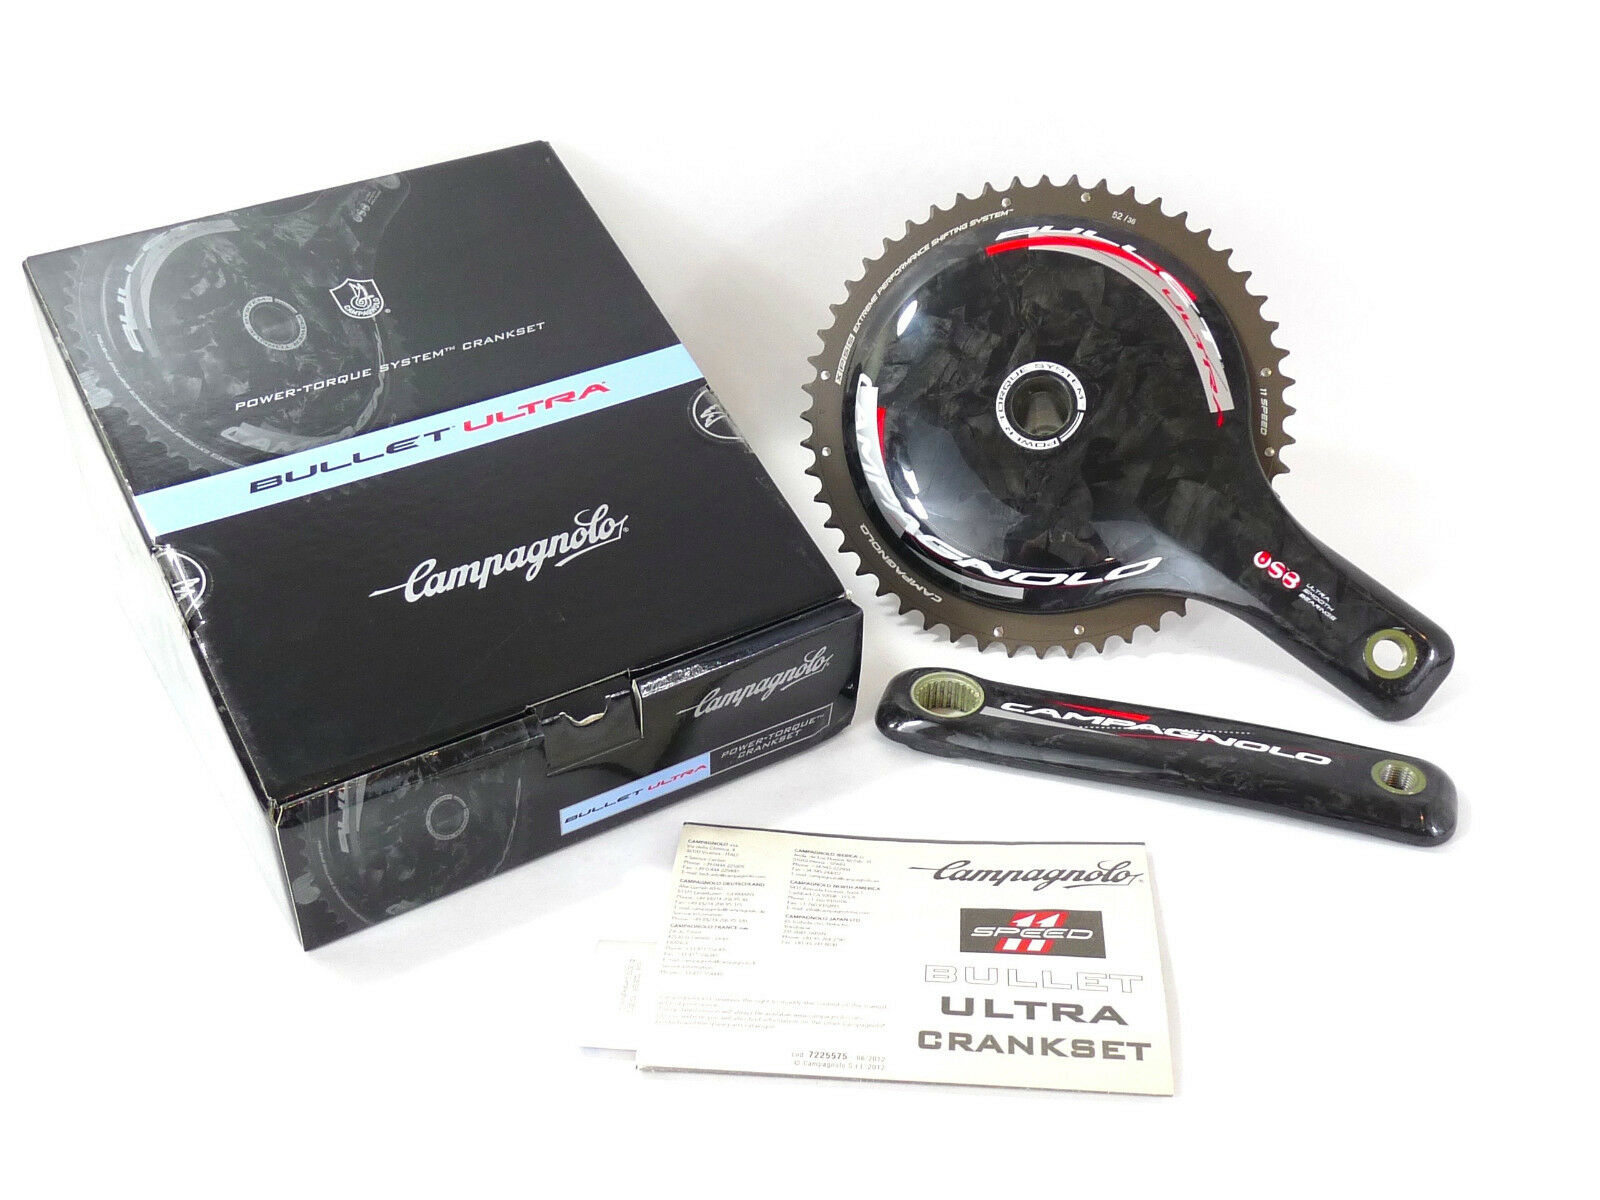 Campagnolo Bullet Crankset Carbon 11 Speed 175mm 52 36  USB CERAMIC BEARINGS NOS  free and fast delivery available